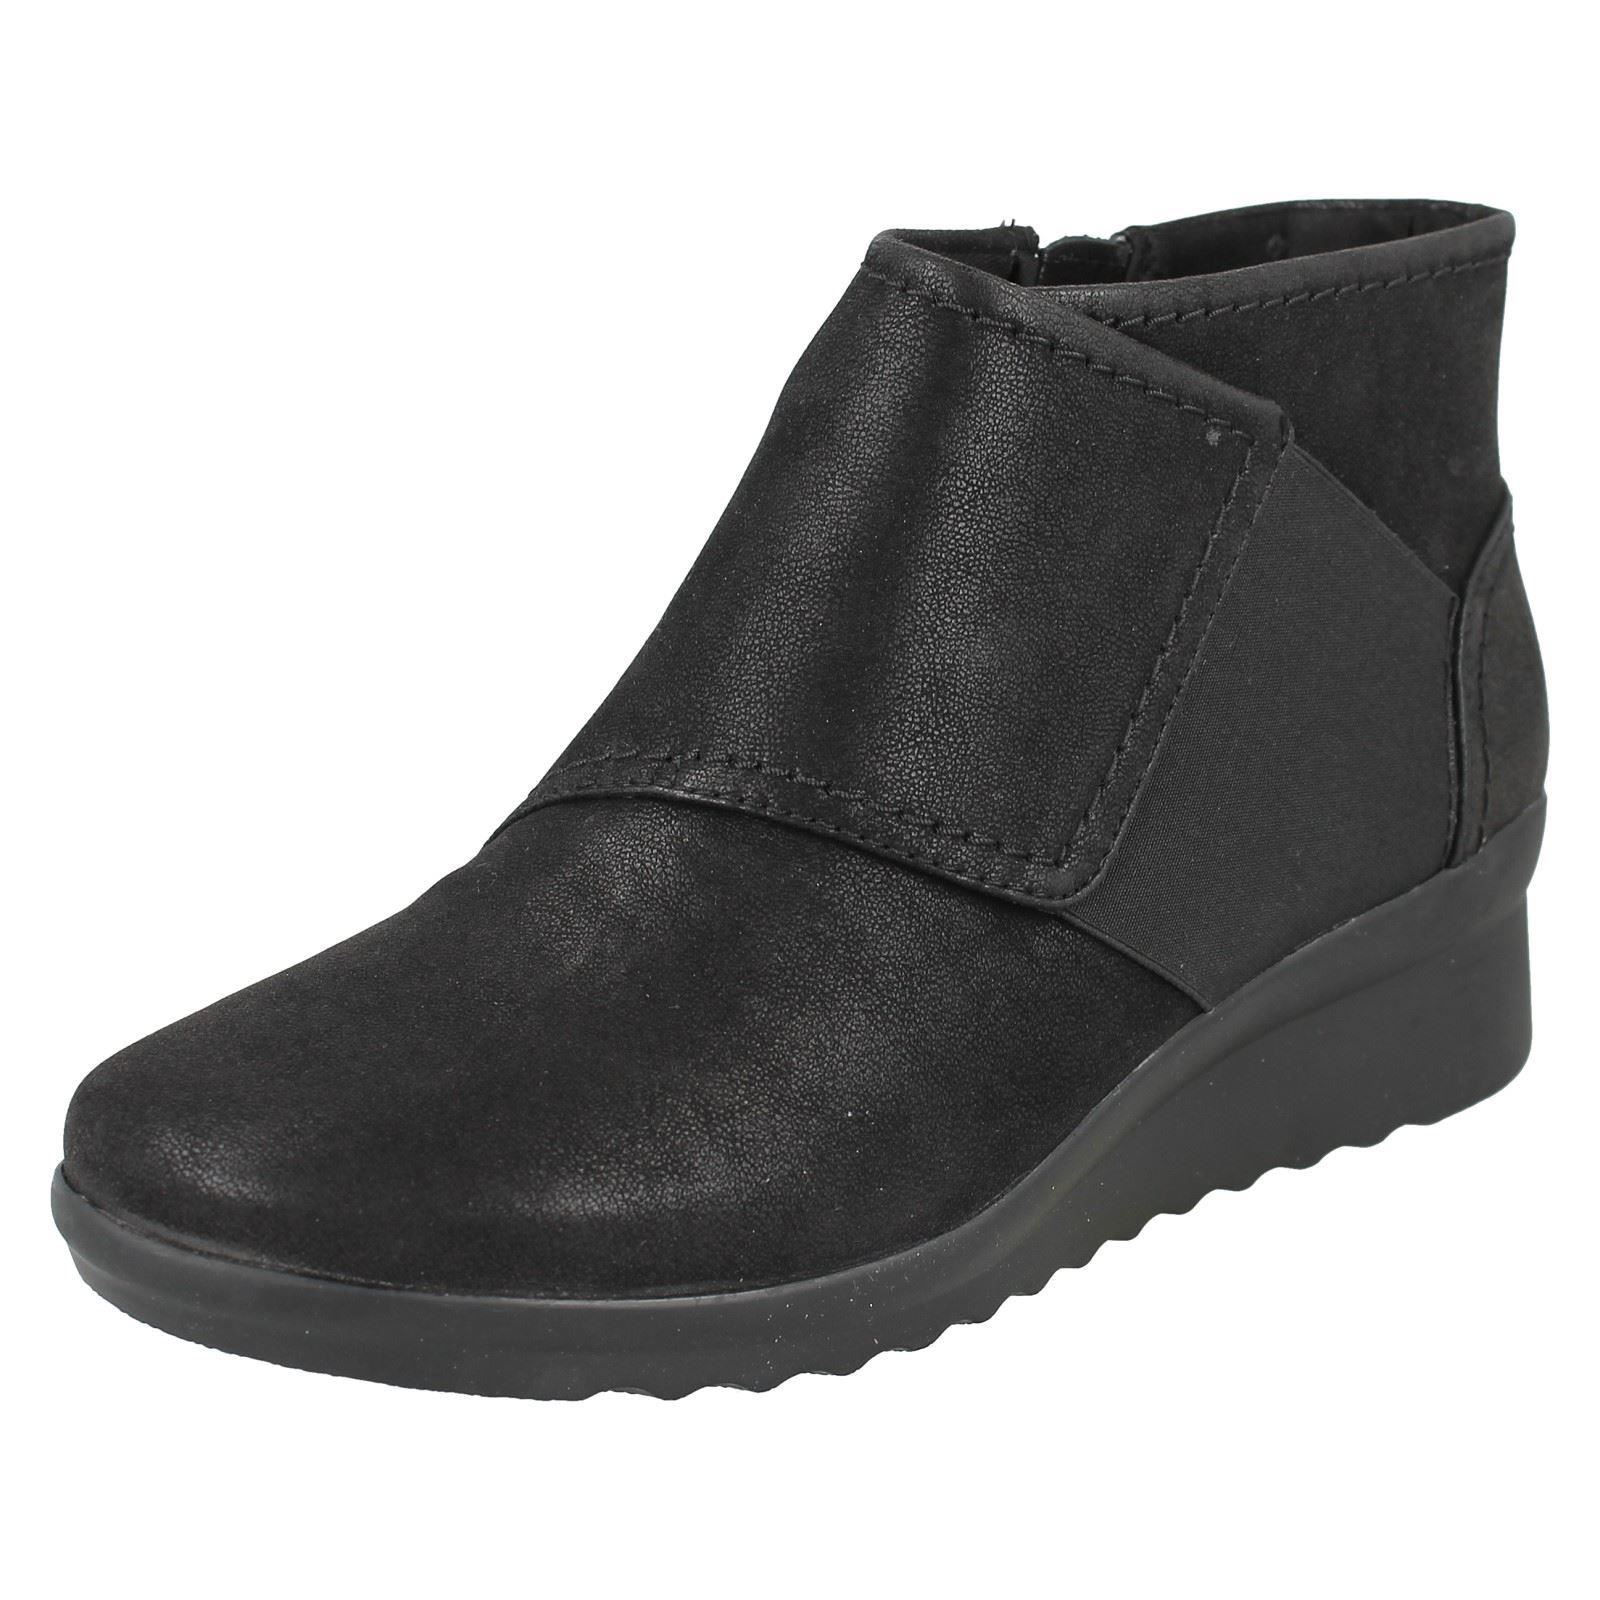 5d381a34fa11 Ladies Clarks Cloudsteppers Zip up Ankle BOOTS Caddell Rush Black UK 4.5 E.  About this product. Picture 1 of 9  Picture 2 of 9 ...